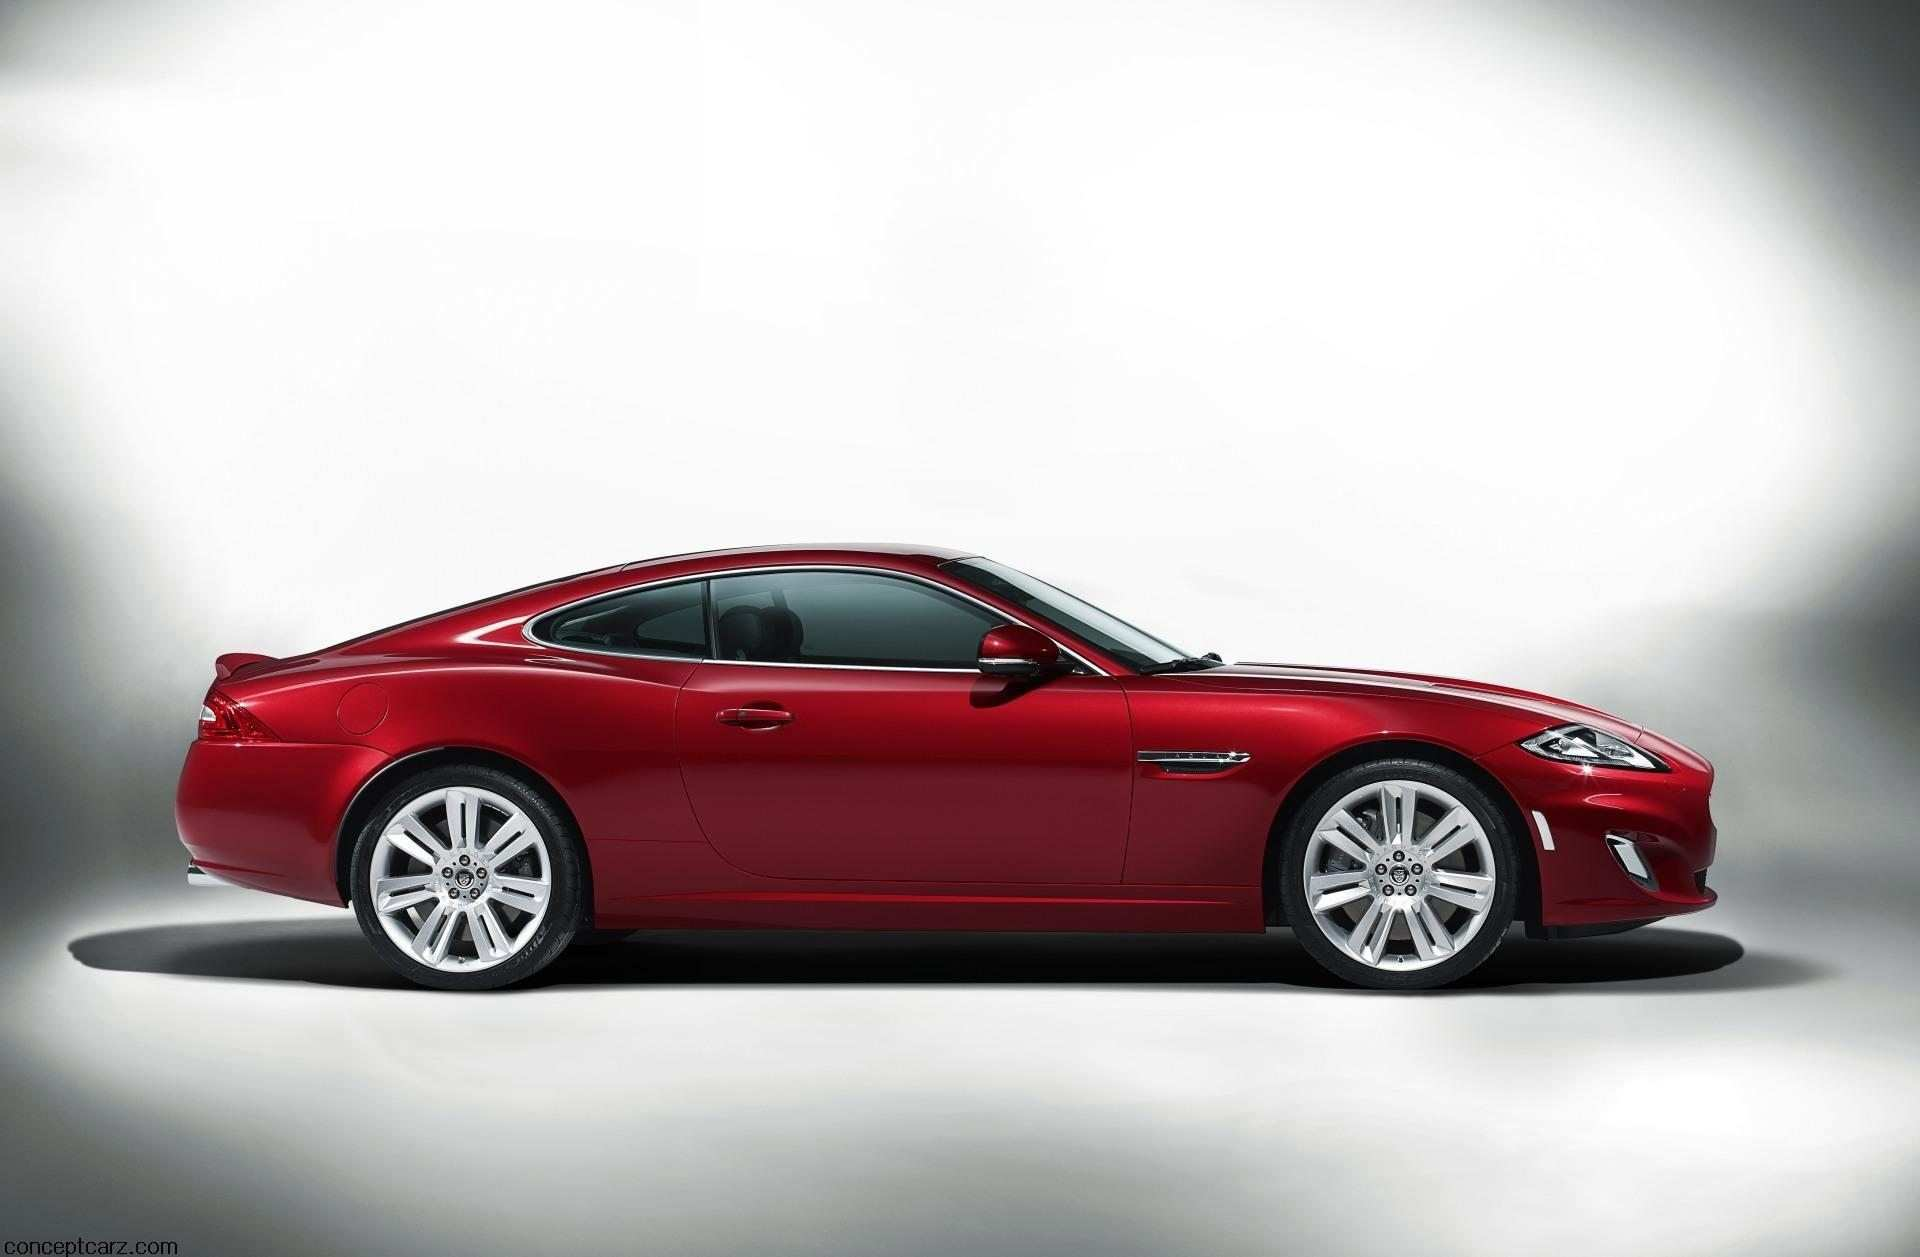 73 New 2020 Jaguar XK Model with 2020 Jaguar XK